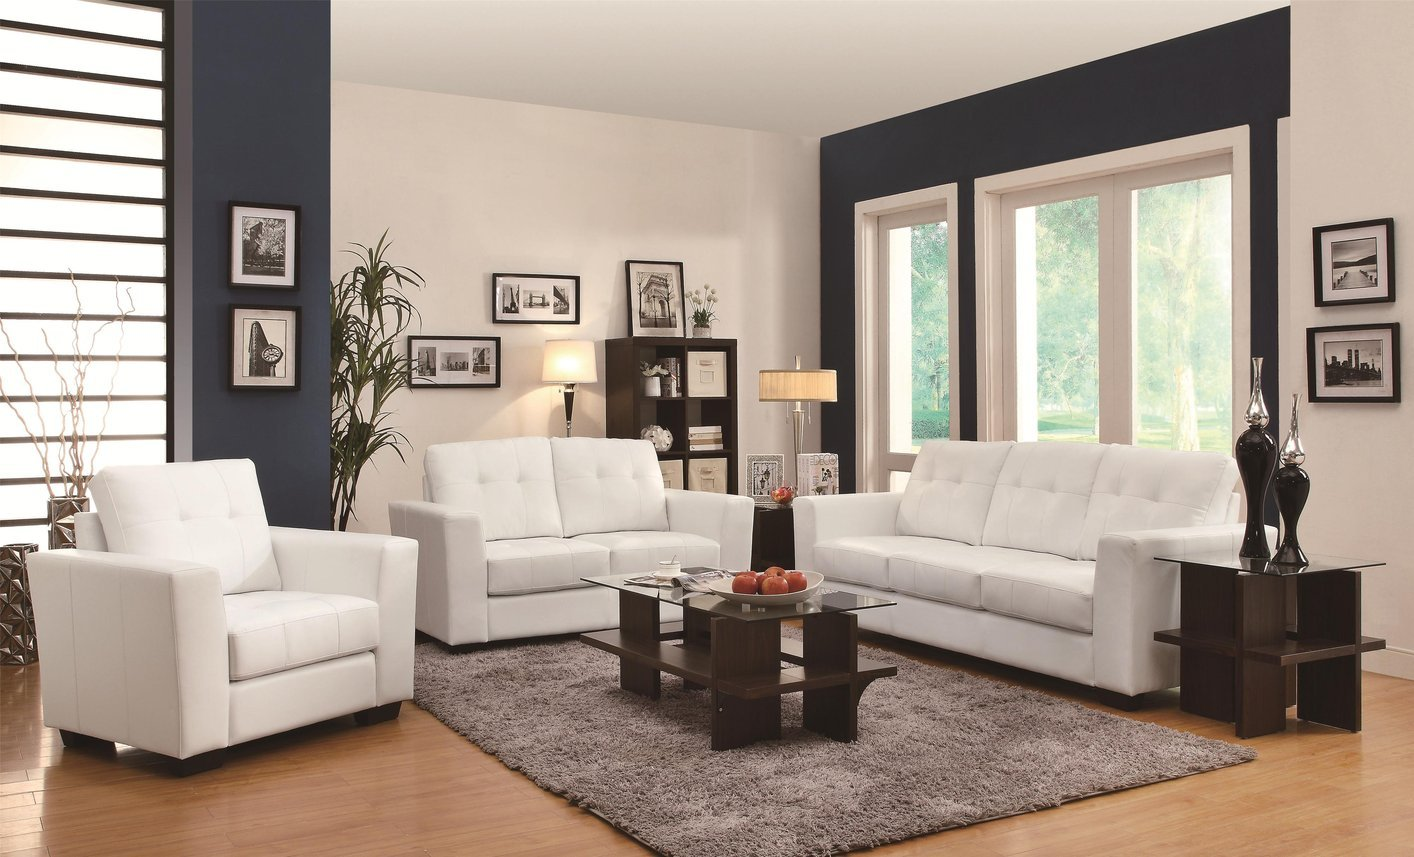 White Leather Chairs For Living Room Coaster Enright 503709 White Leather Chair Steal A Sofa